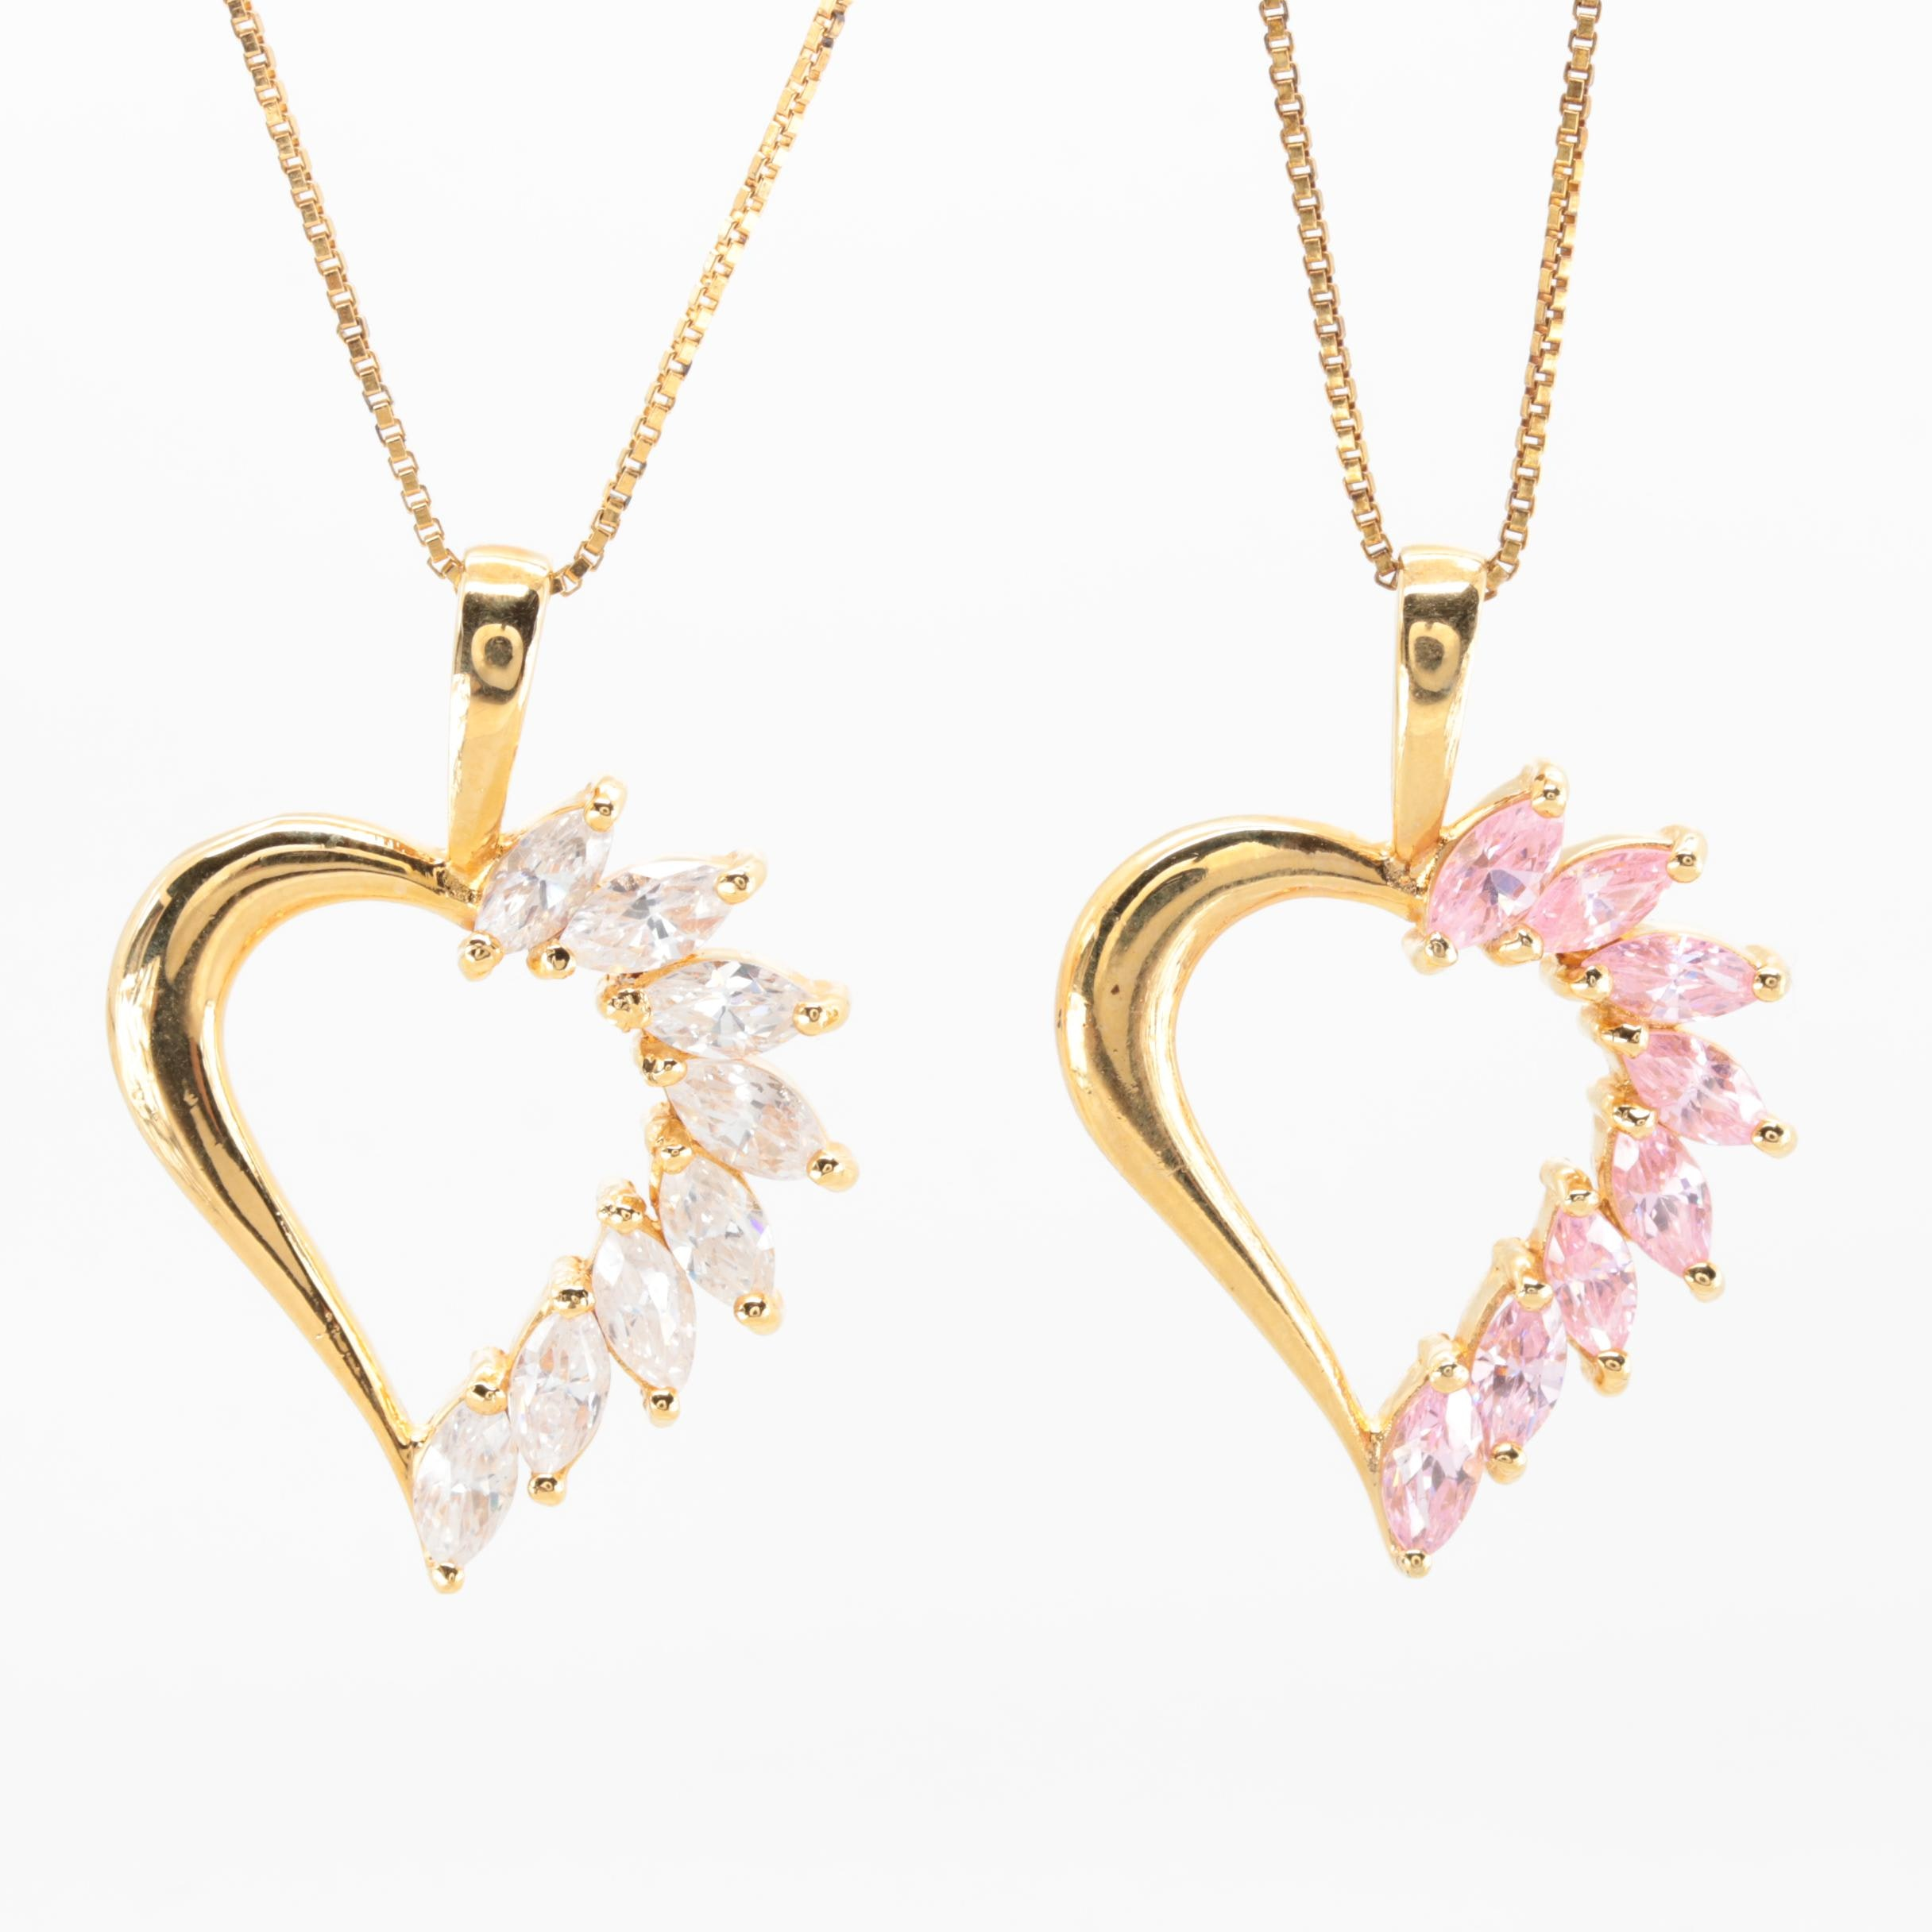 Gold Wash on Sterling Silver Cubic Zirconia Open Heart Necklace Selection